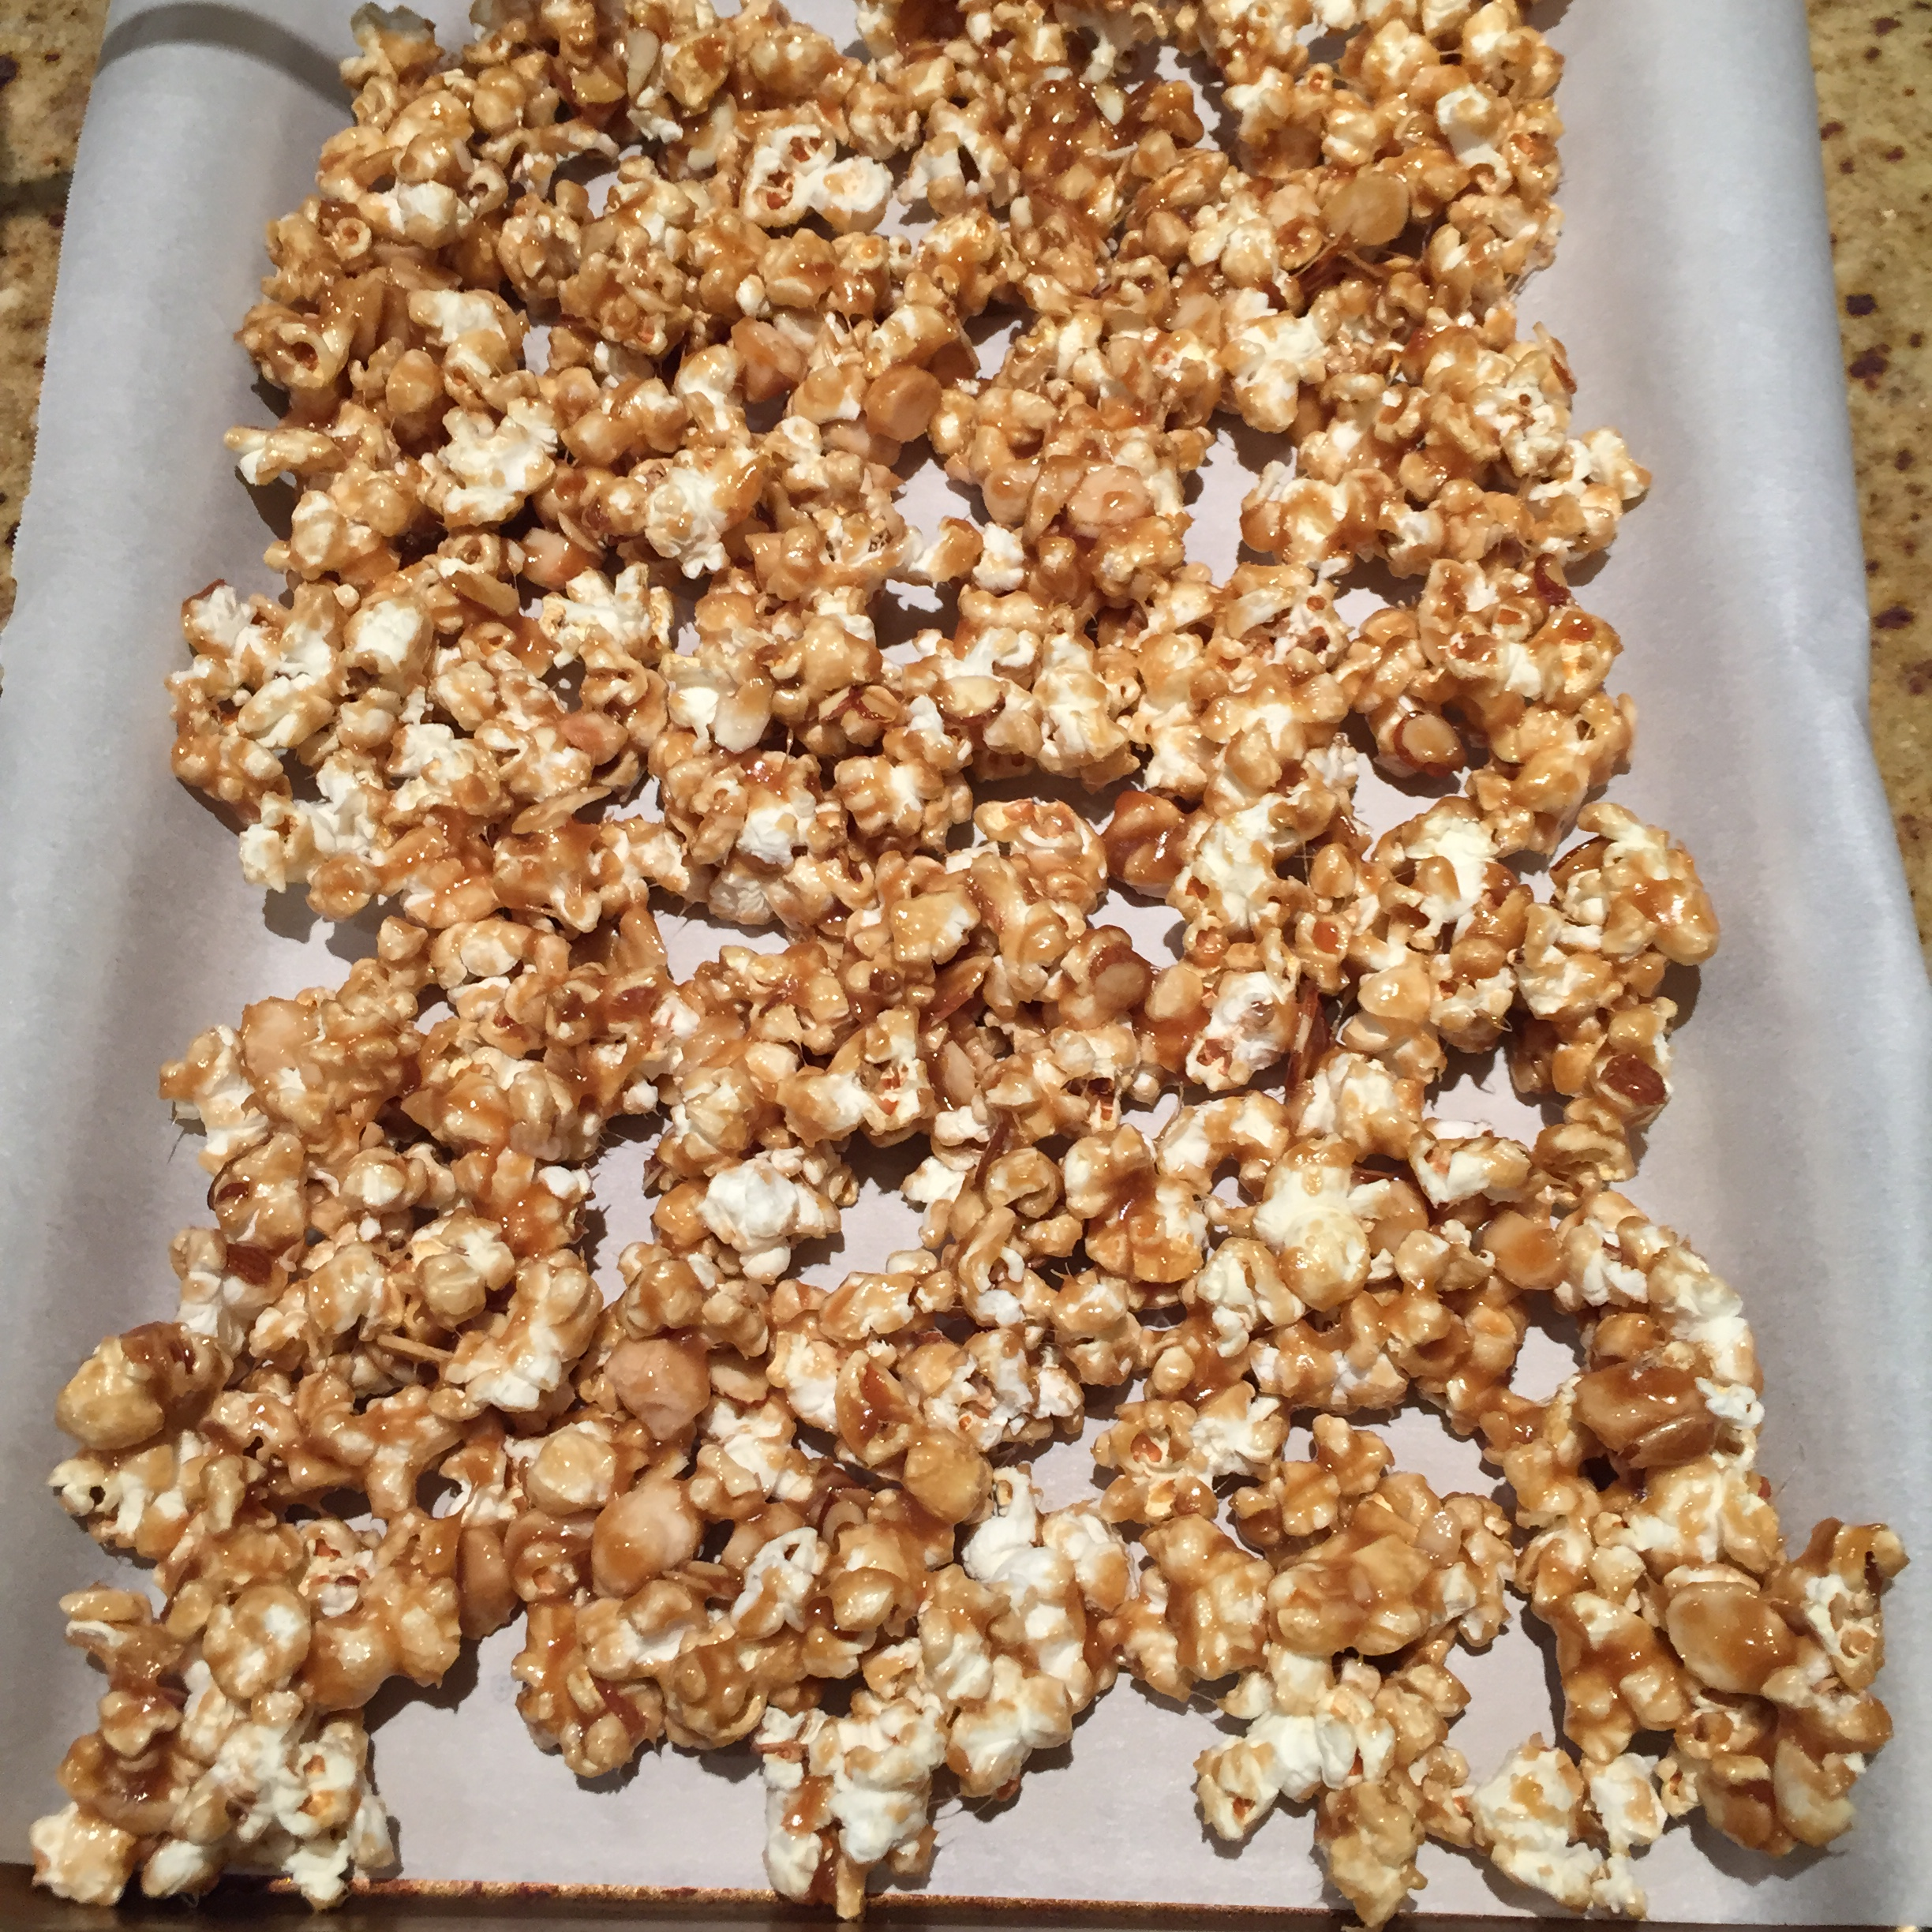 Spread the popcorn onto a baking sheet and bake for about 30 minutes